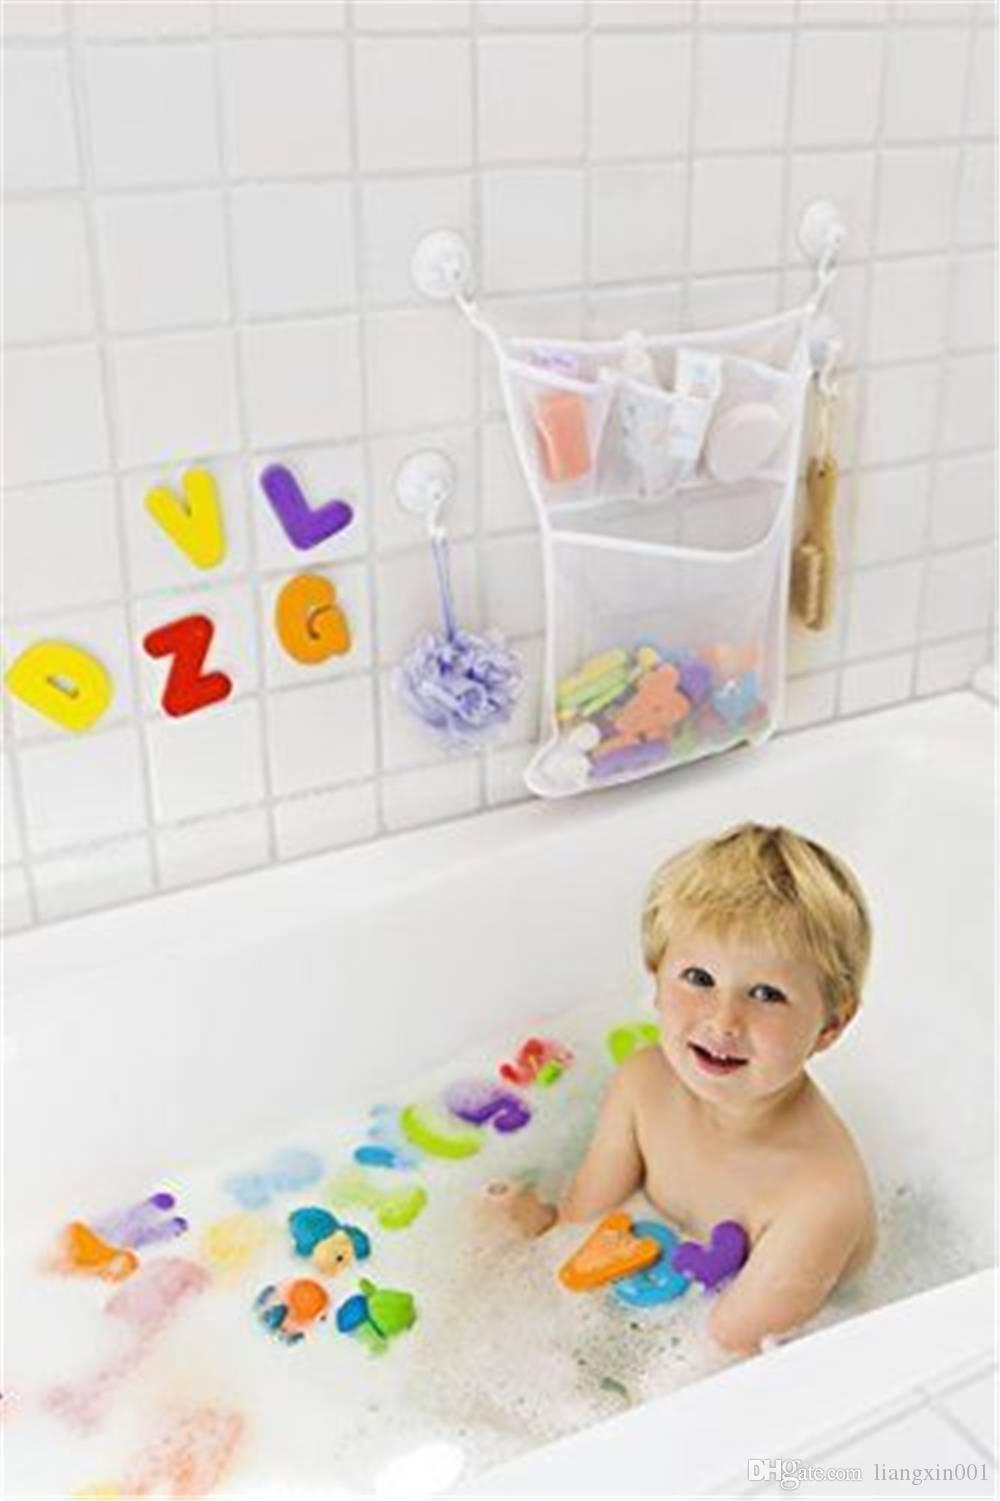 Baby Bath Bathtub Toy Mesh  Net Storage Bag Organizer Holder Bathroom ^